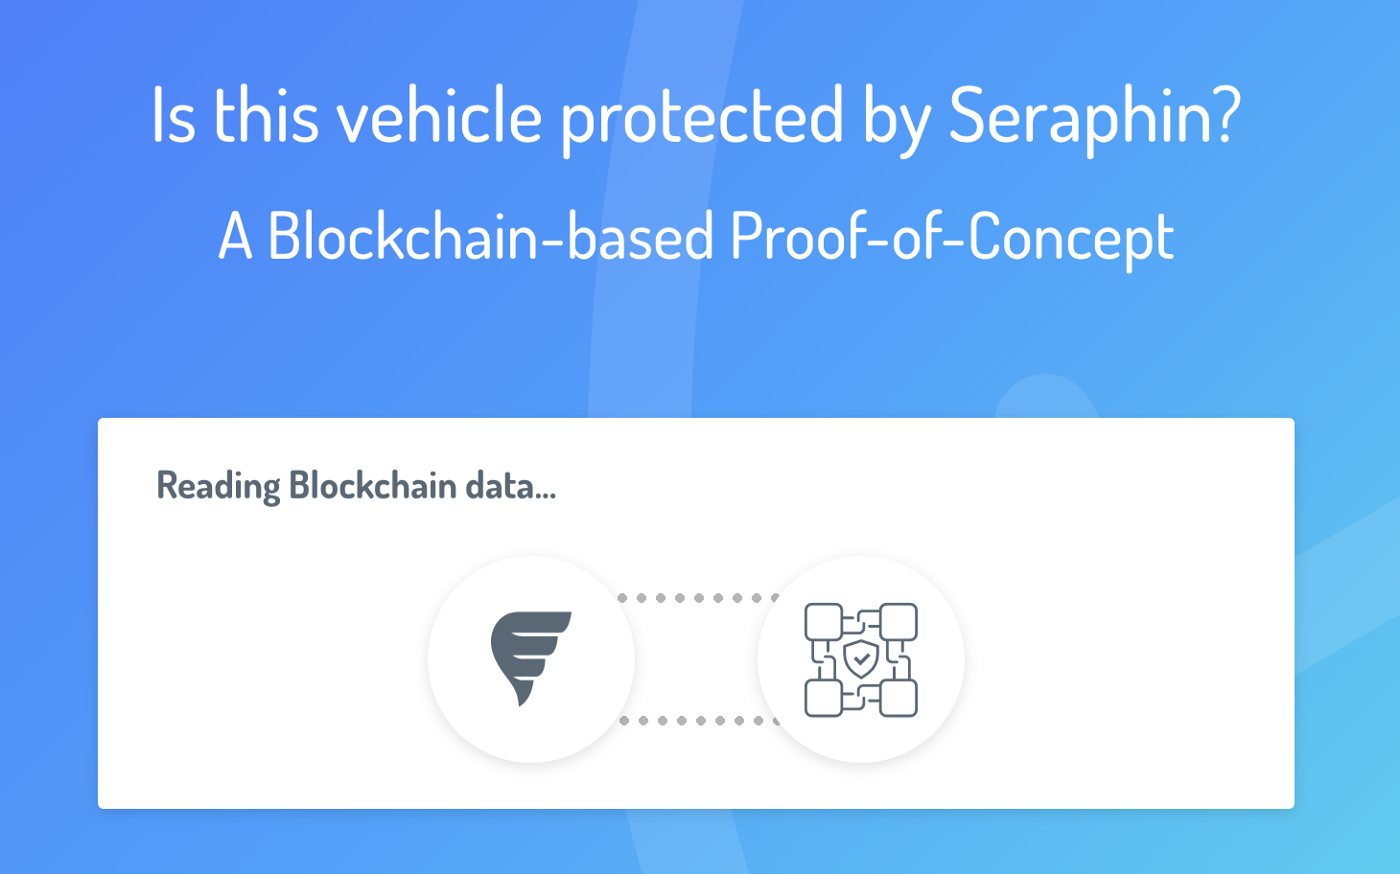 Seraphin launches Belgium's first Proof-of-Concept of Blockchain